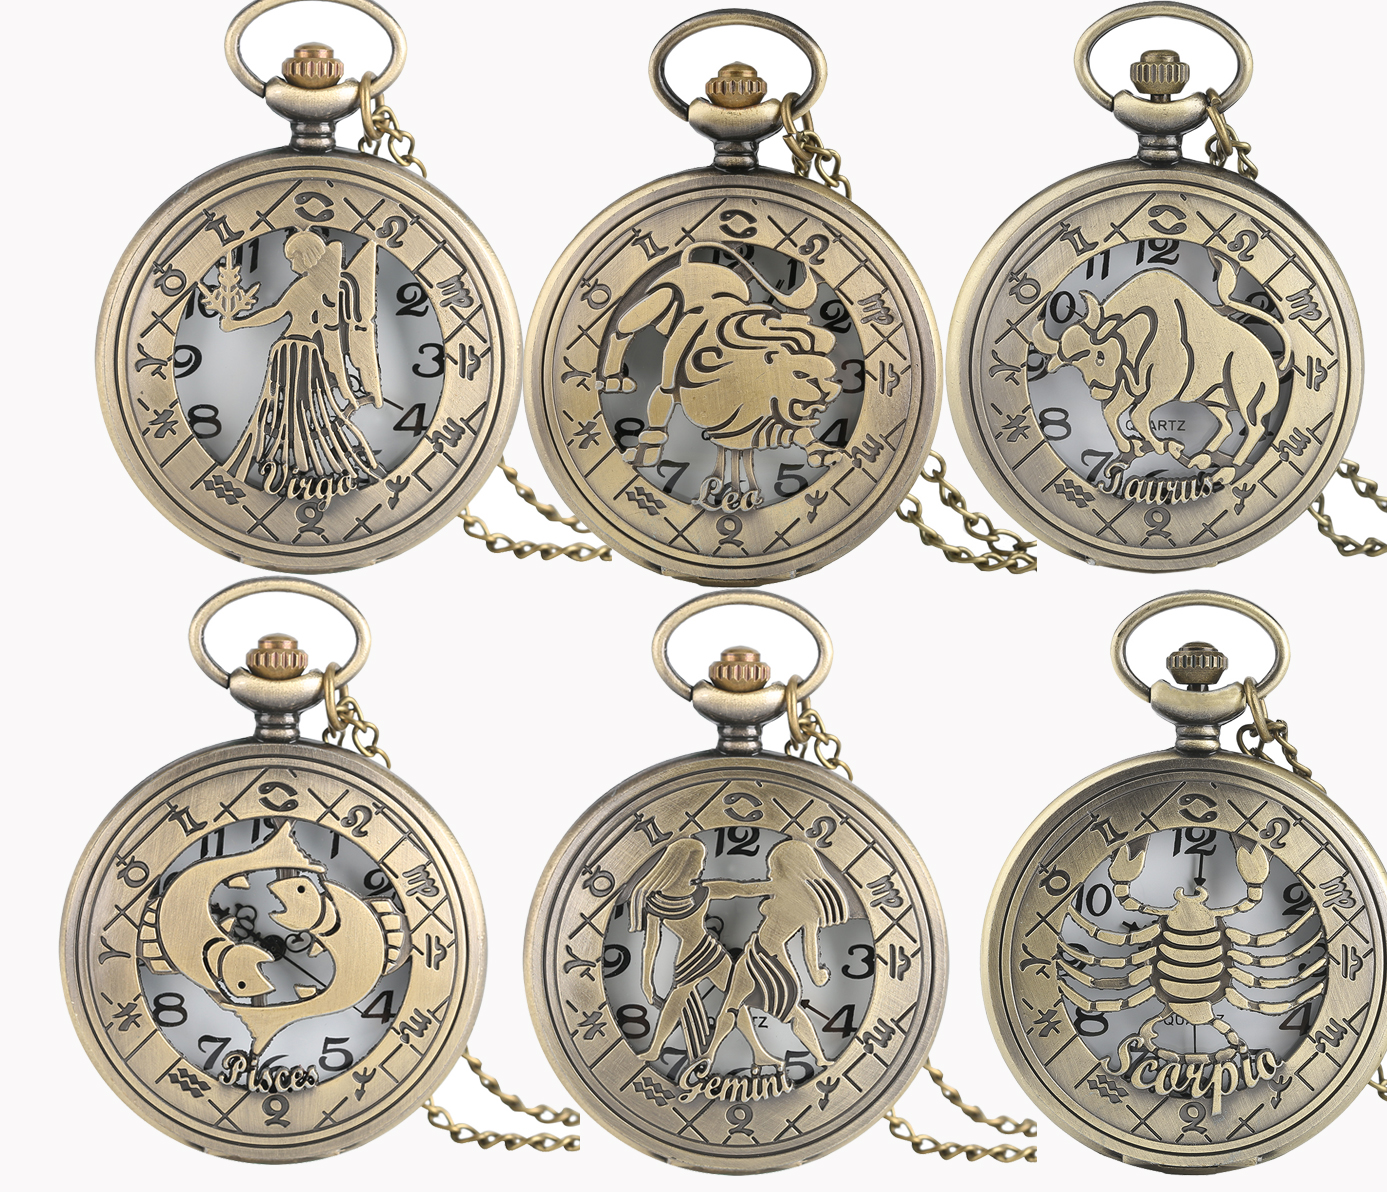 Antique Twelve Constellations Theme Pocket Watch Unisex Copper Hollow Pendant Chain Gemini Leo Scorpio Quartz Clock in Gift Bag lover pocket watch antique bronze turkish flag design moon and star theme quartz pocket watch with necklace chain gift ll 17